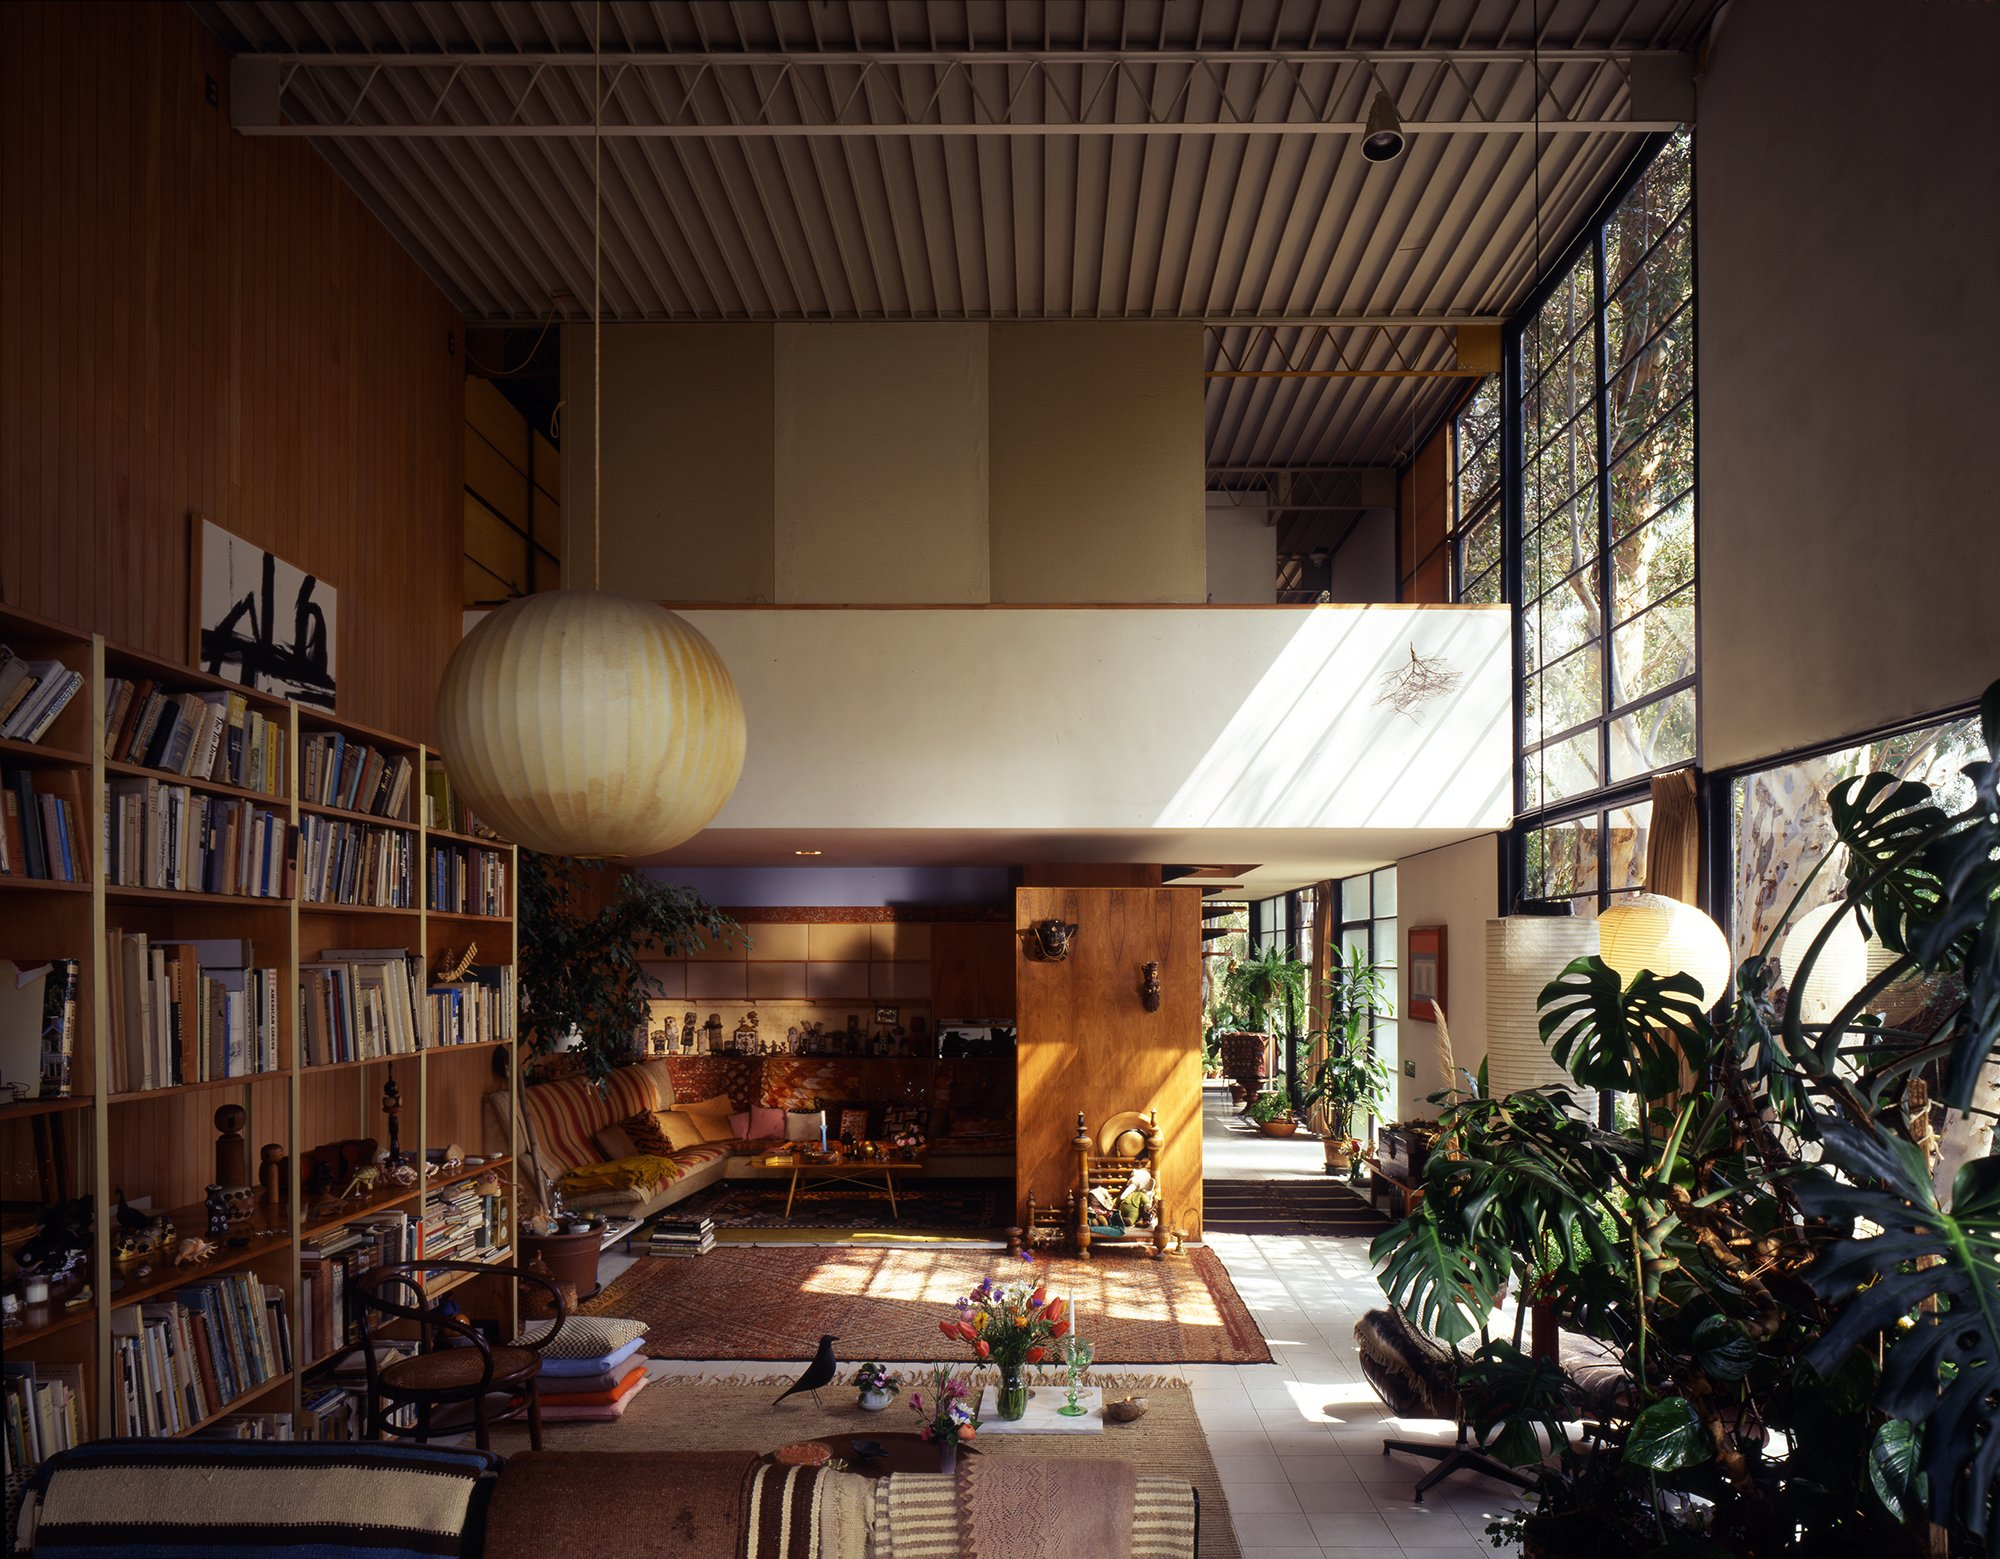 Eames House: Case Study House no. 8